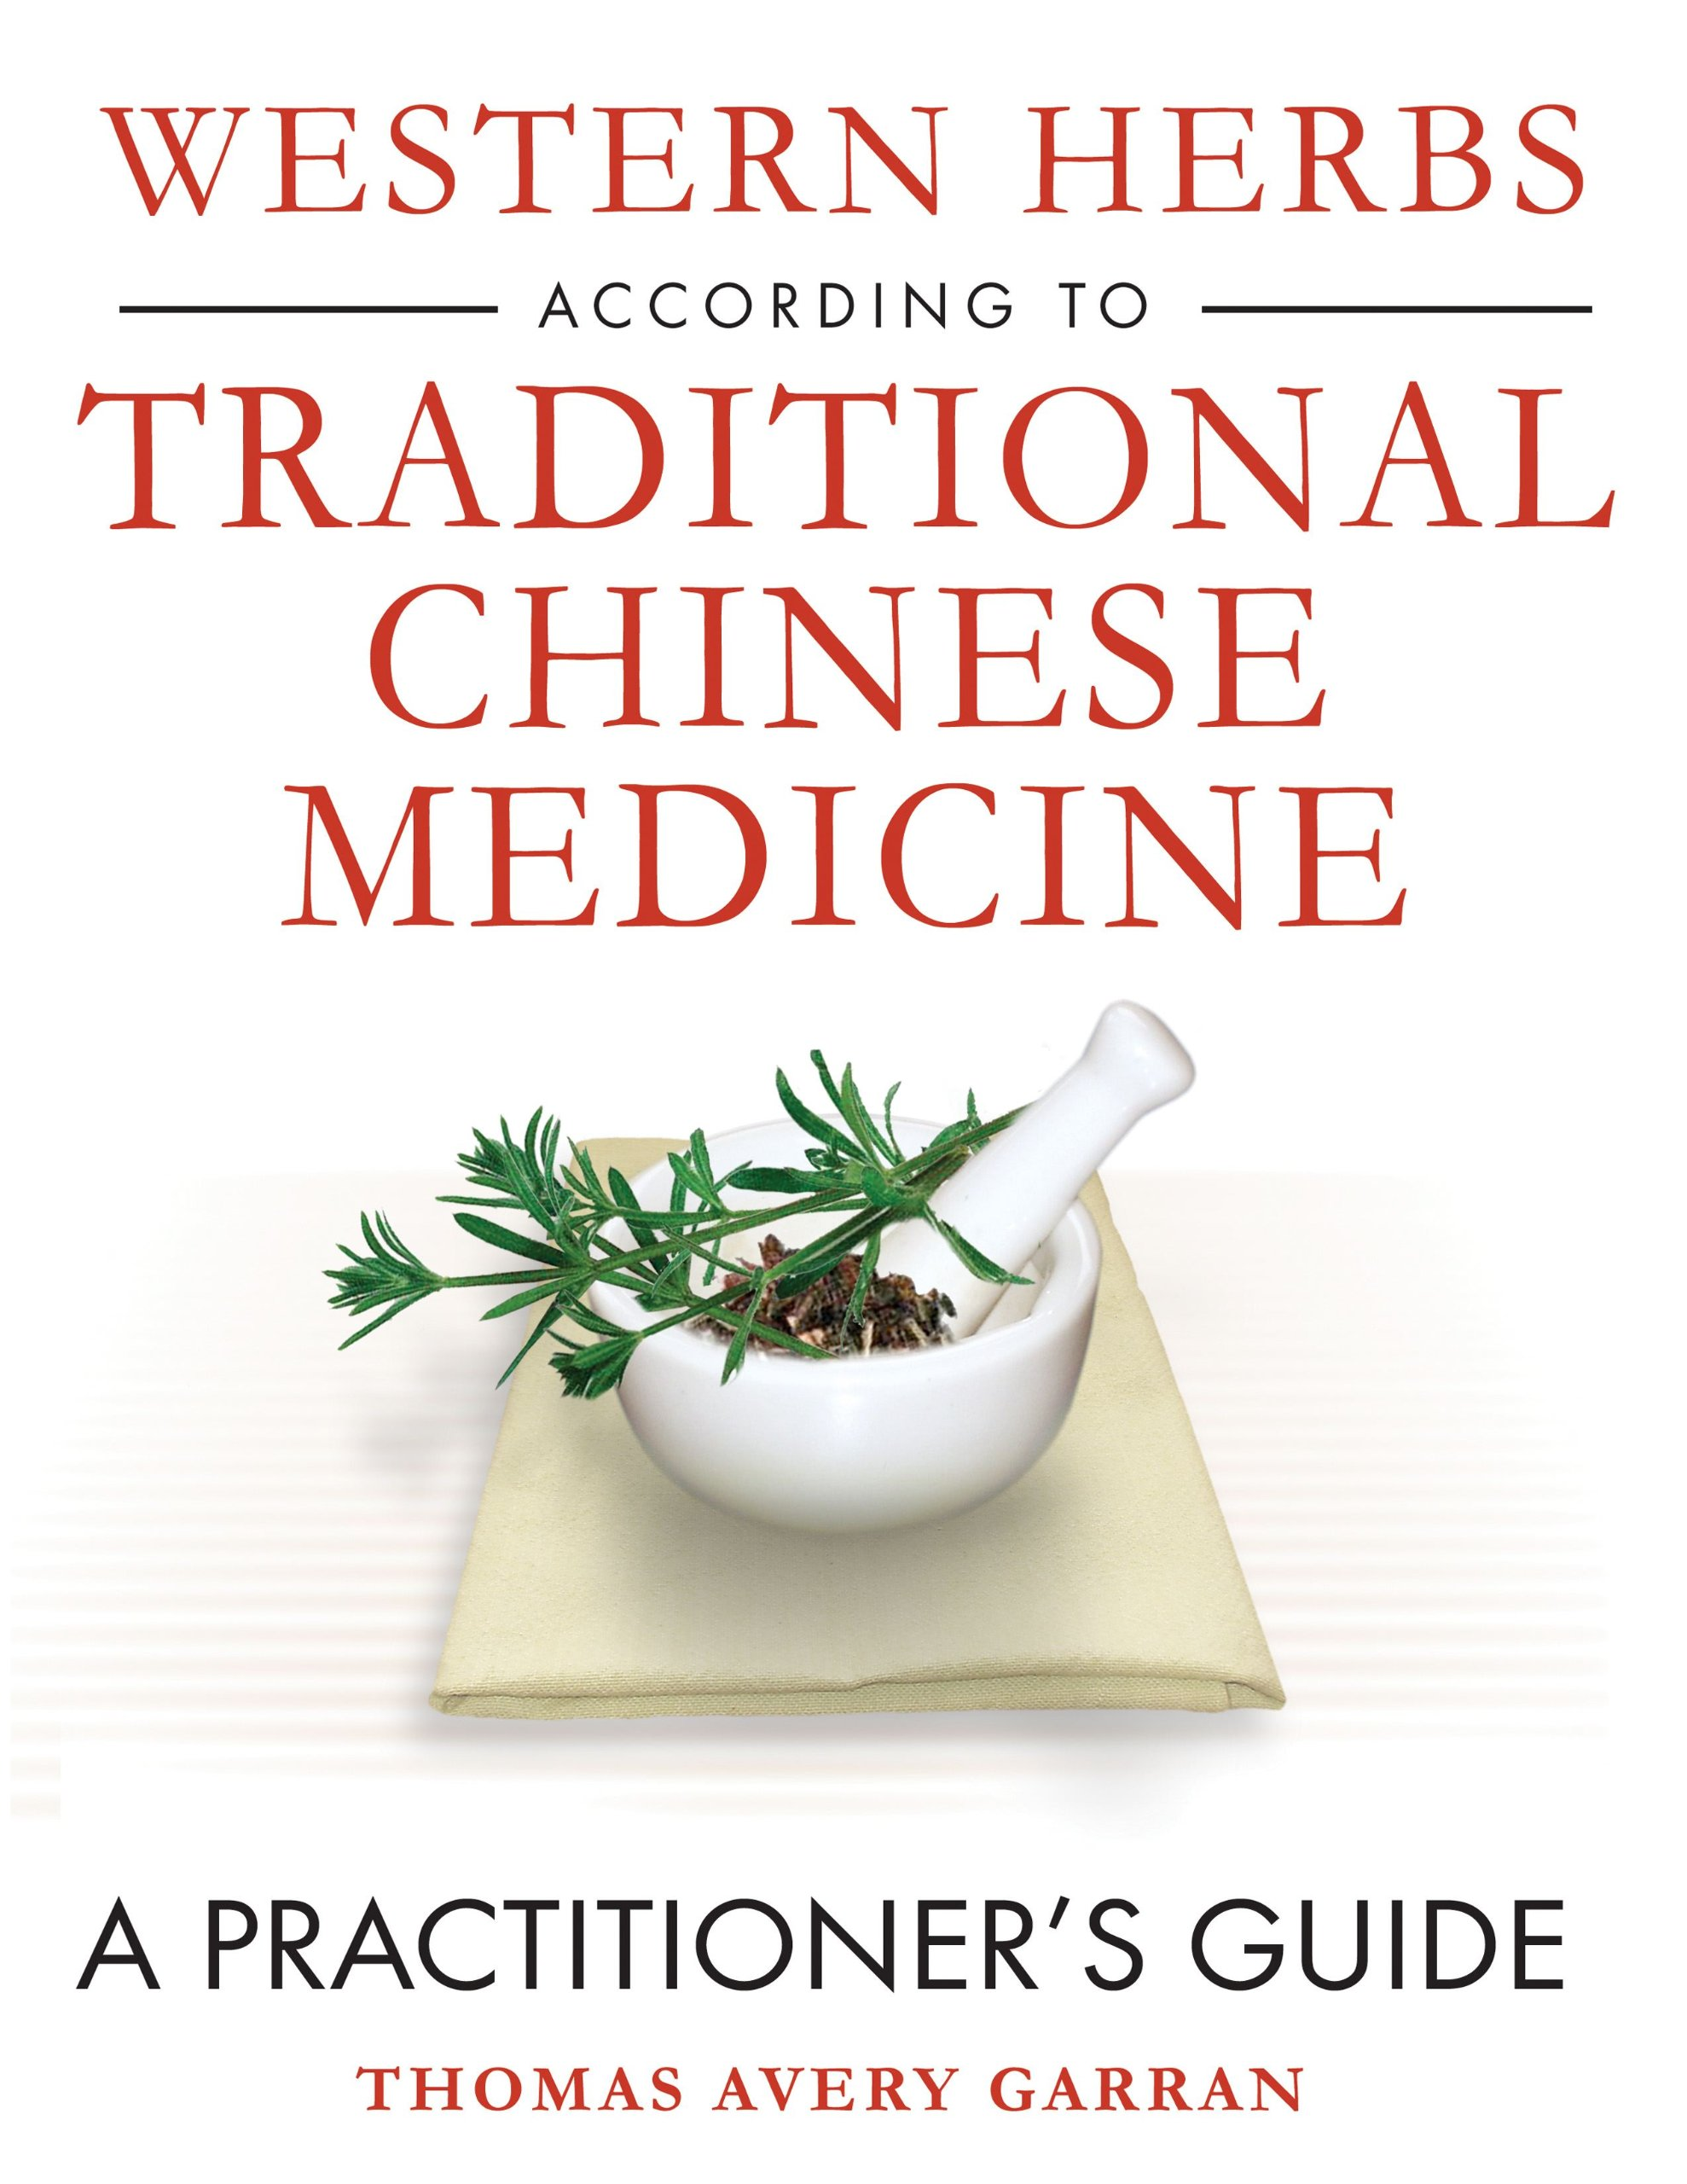 Buying chinese herbs online - Western Herbs According To Traditional Chinese Medicine A Practitioner S Guide Herbal Books Herbal Academy